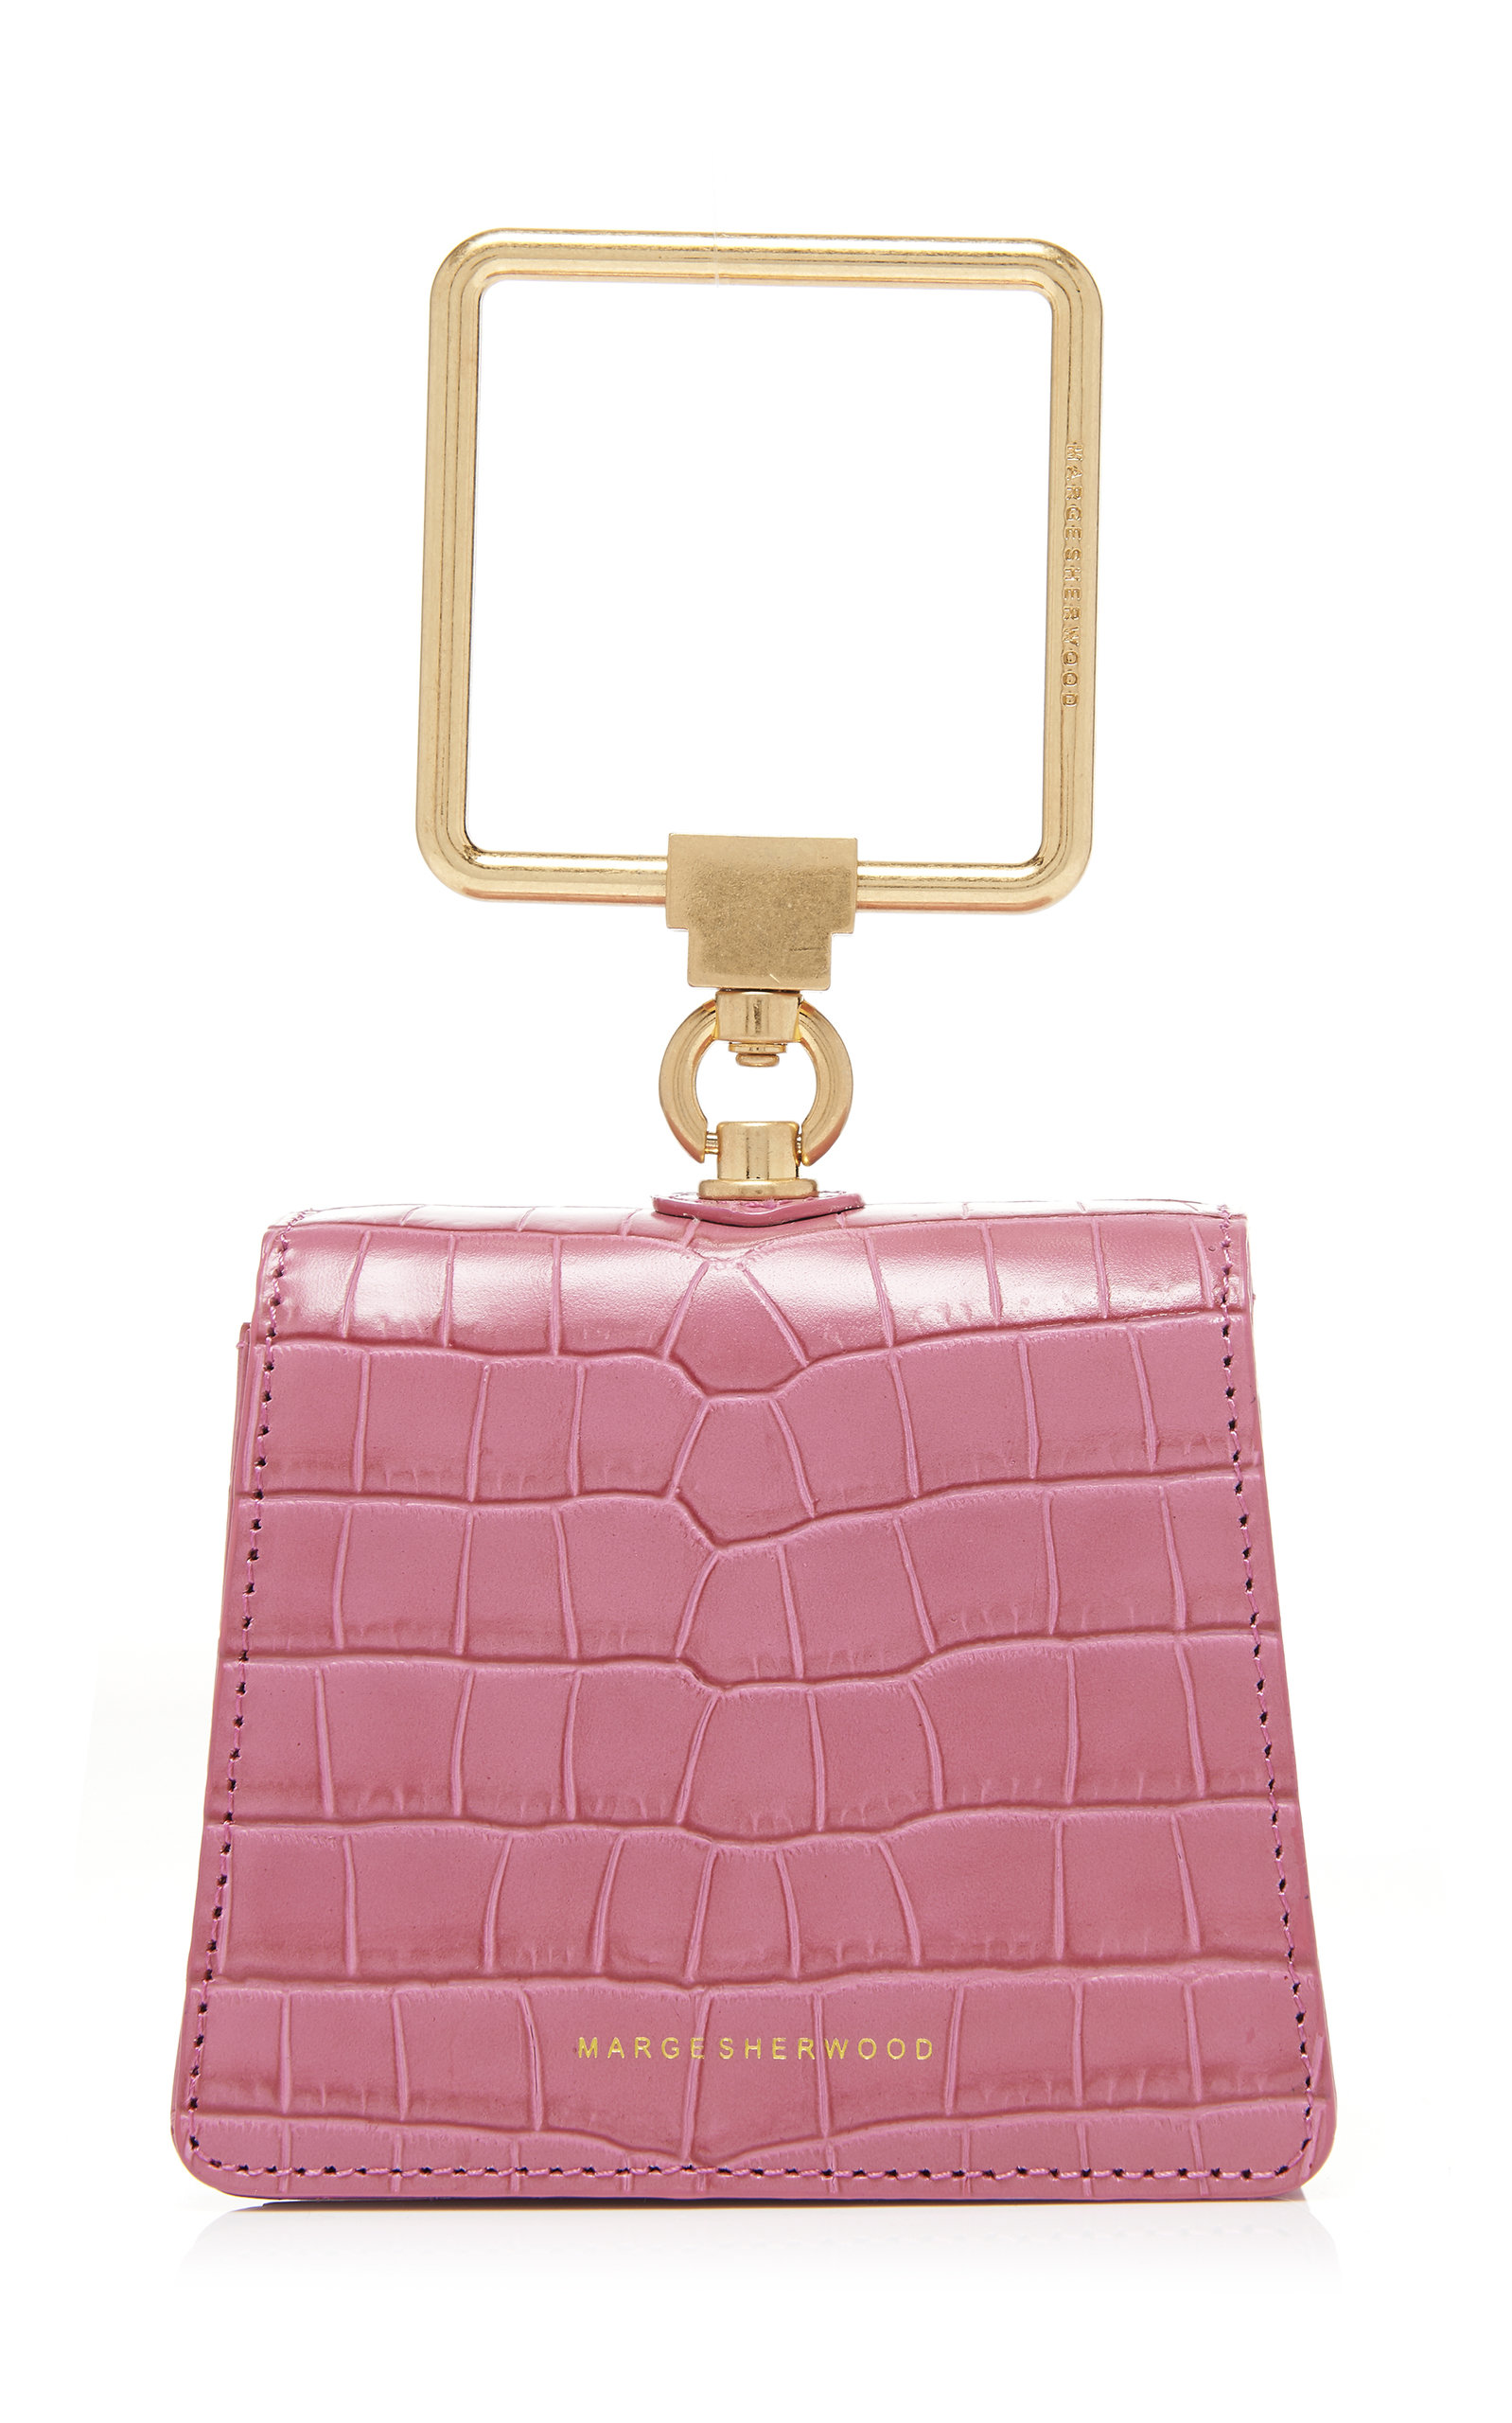 Marge Sherwood Mini Pump Croc-effect Leather Top Handle Bag In Pink